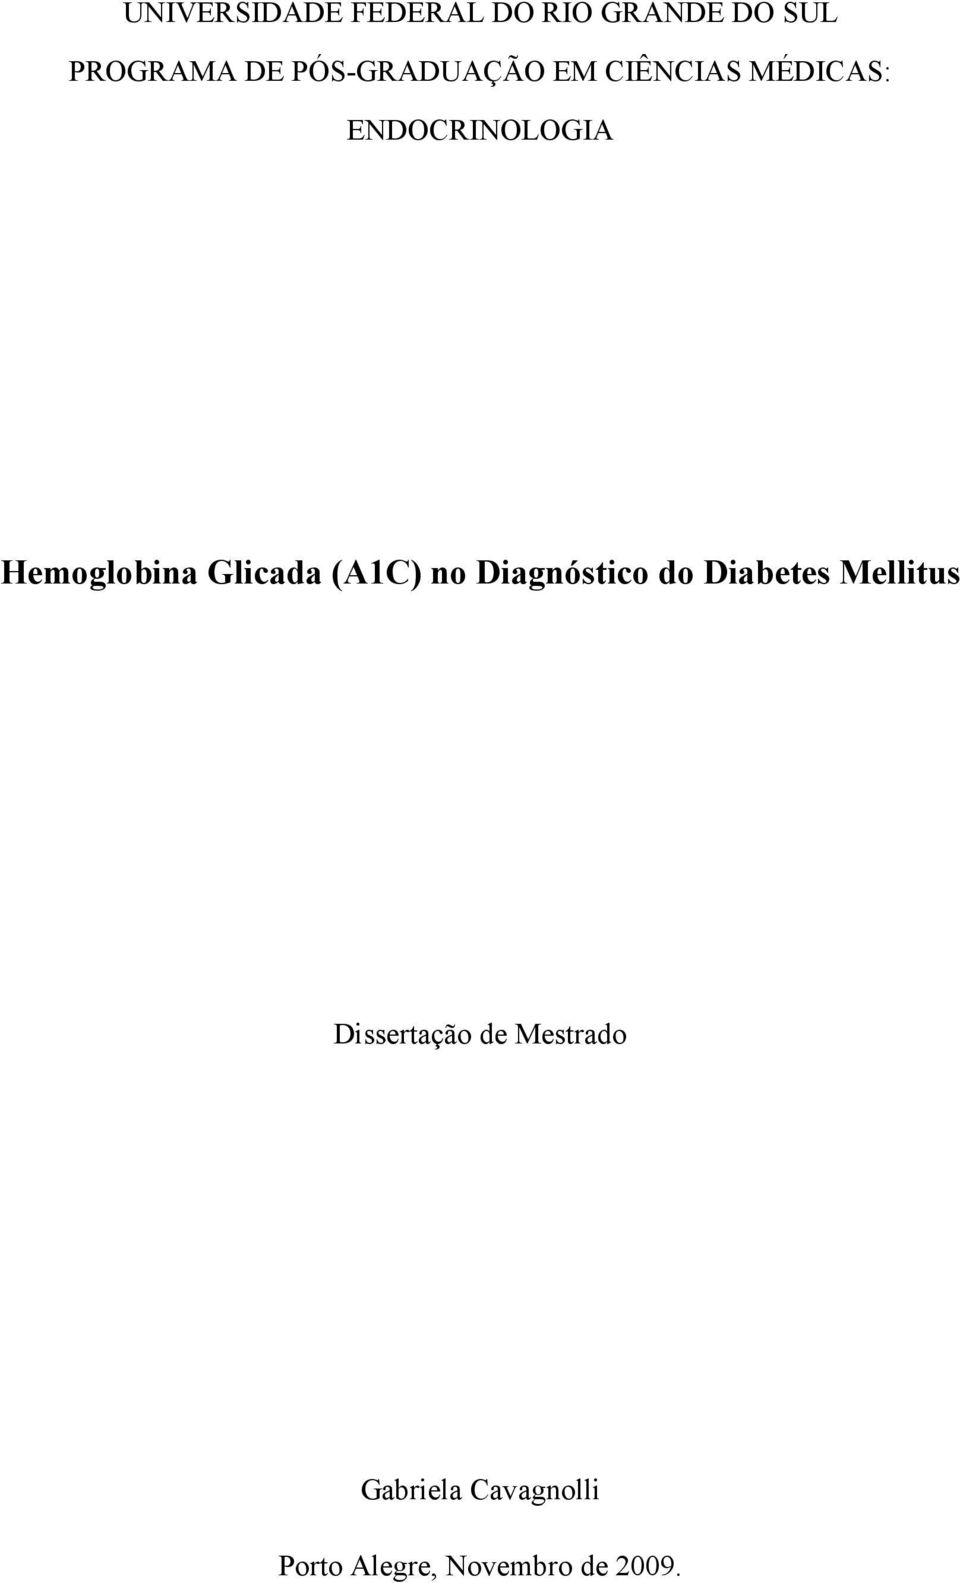 Hemoglobina Glicada (A1C) no Diagnóstico do Diabetes